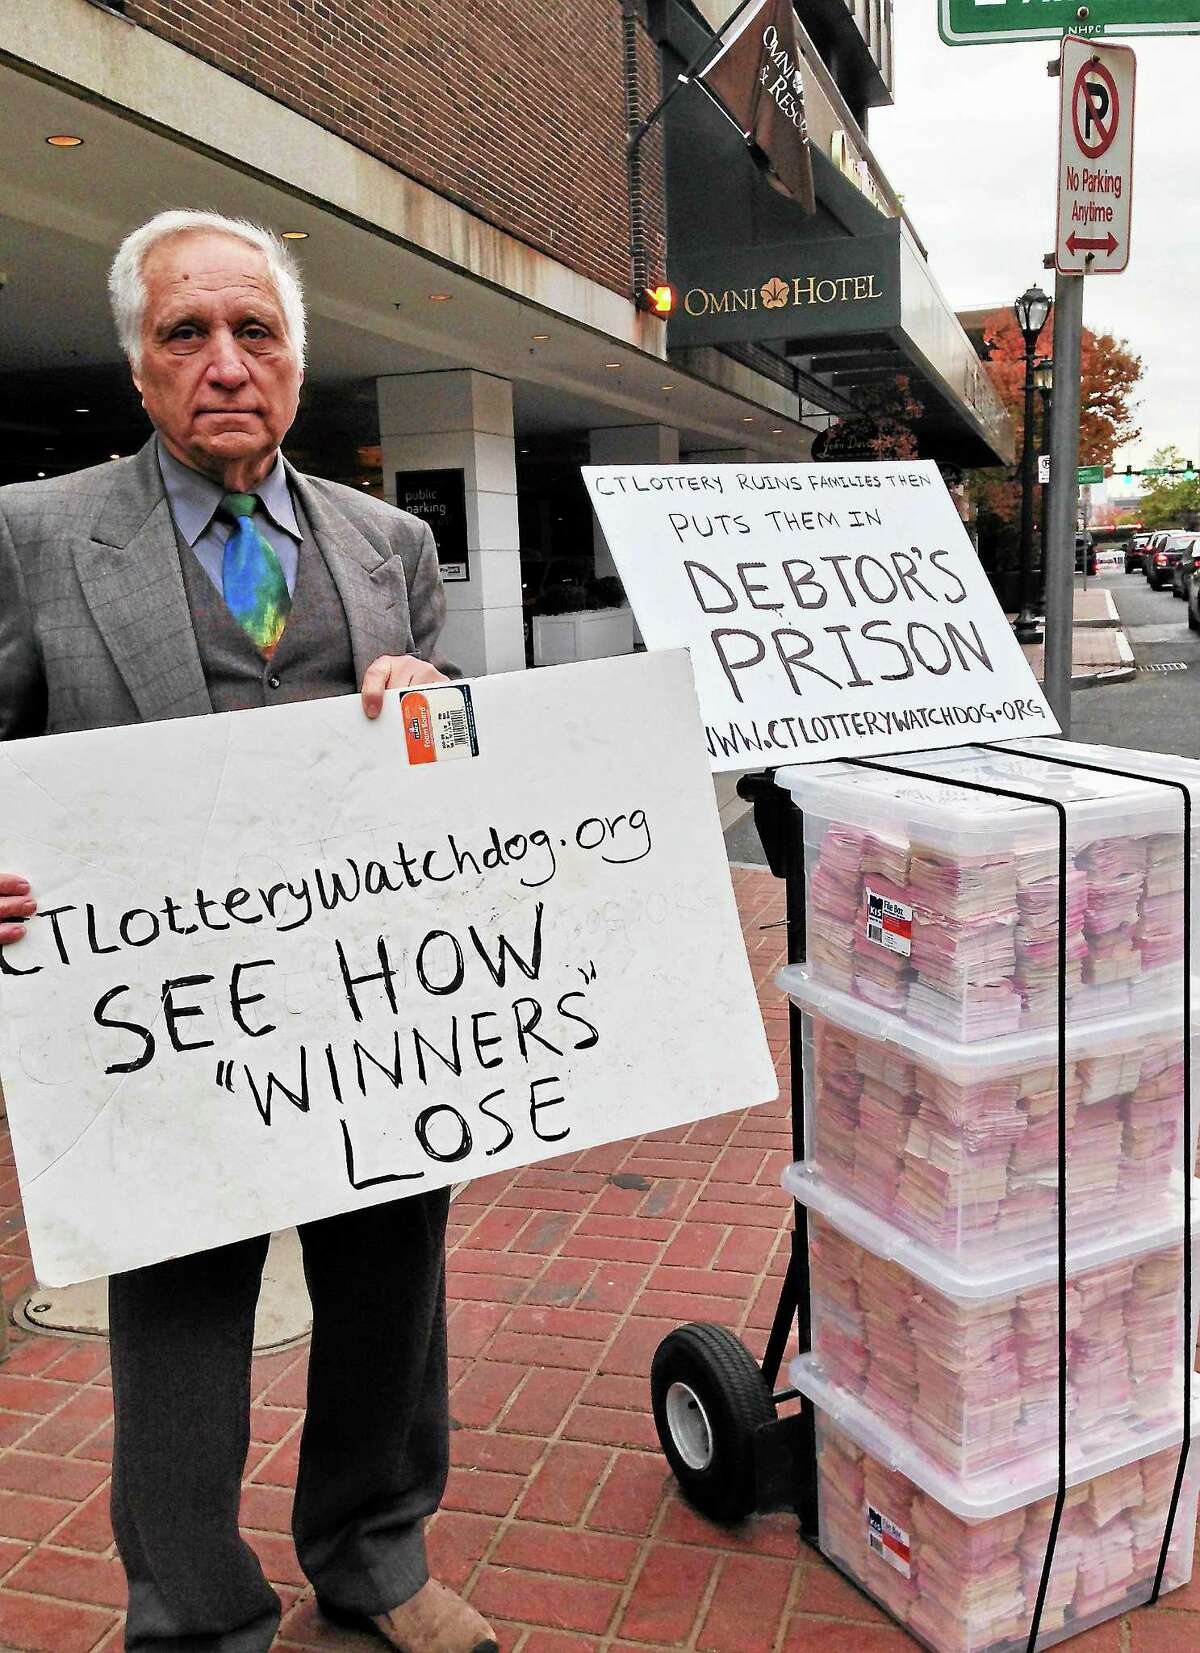 Charlie Merlis of West Hartford mans Adam Osmond's lottery protest, with thousands of losing tickets, outside the CCPG conference in New Haven Wednesday morning. Osmond declined to be photographed.